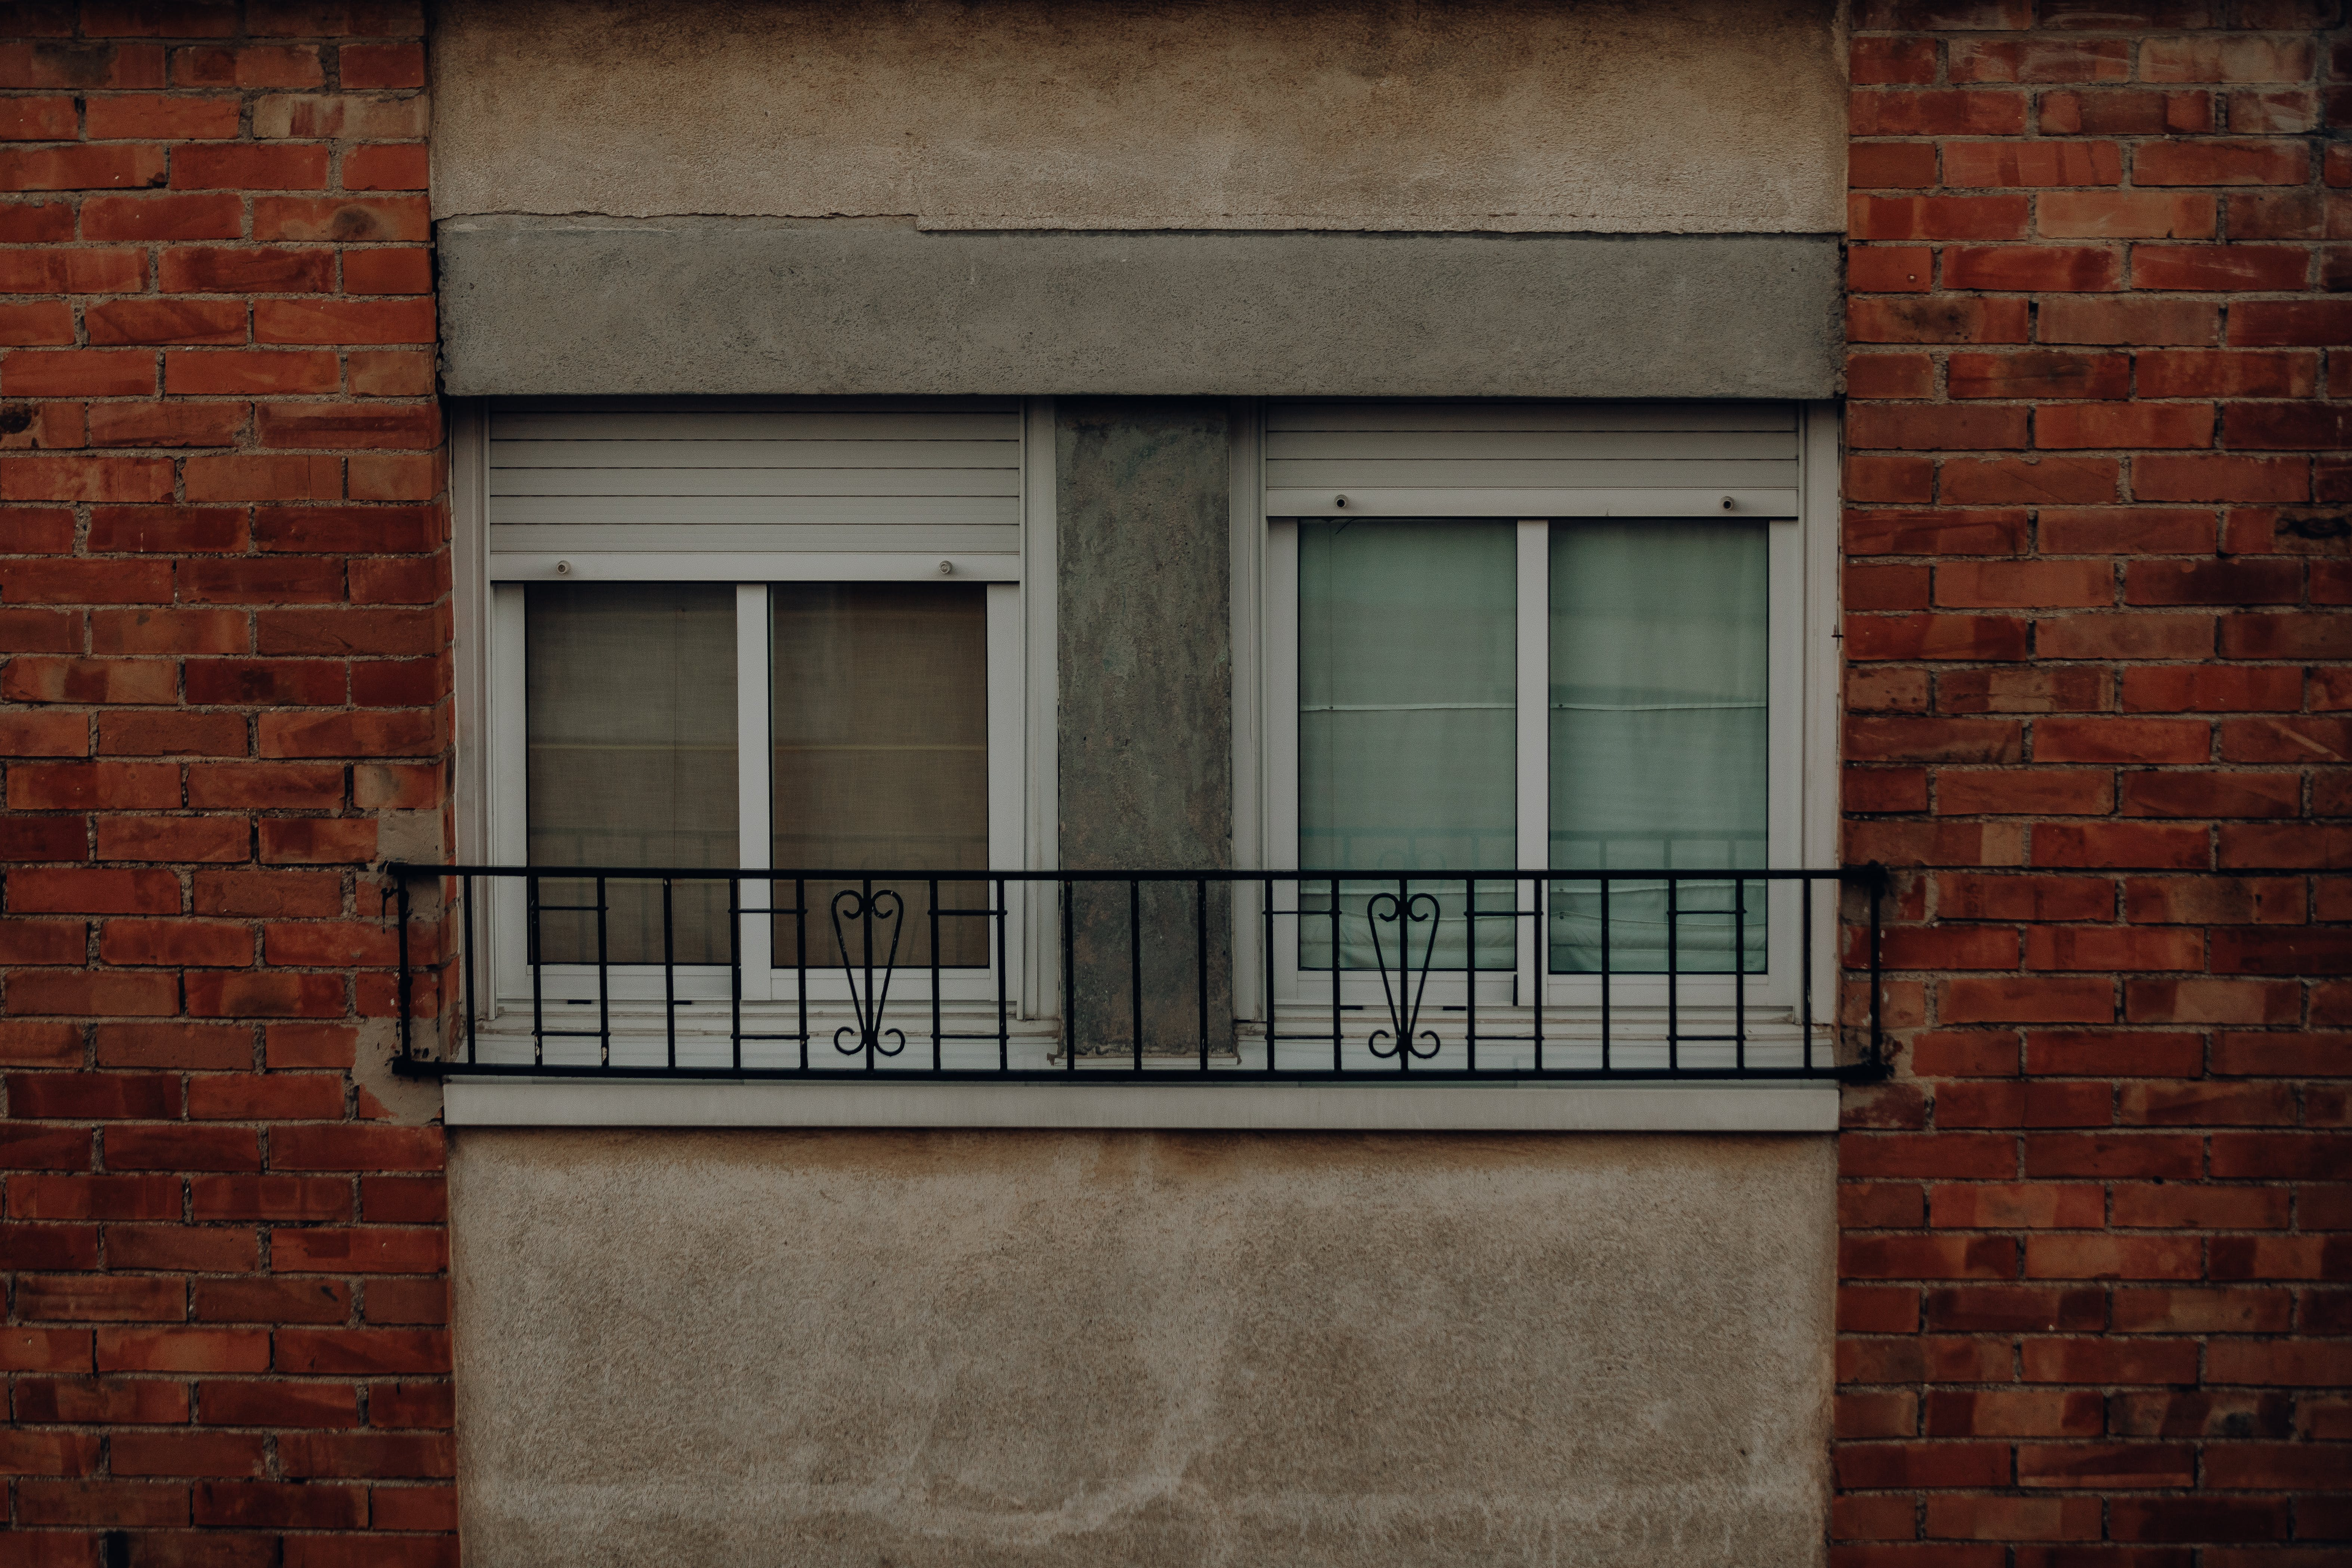 Two Closed Windows Between Walls